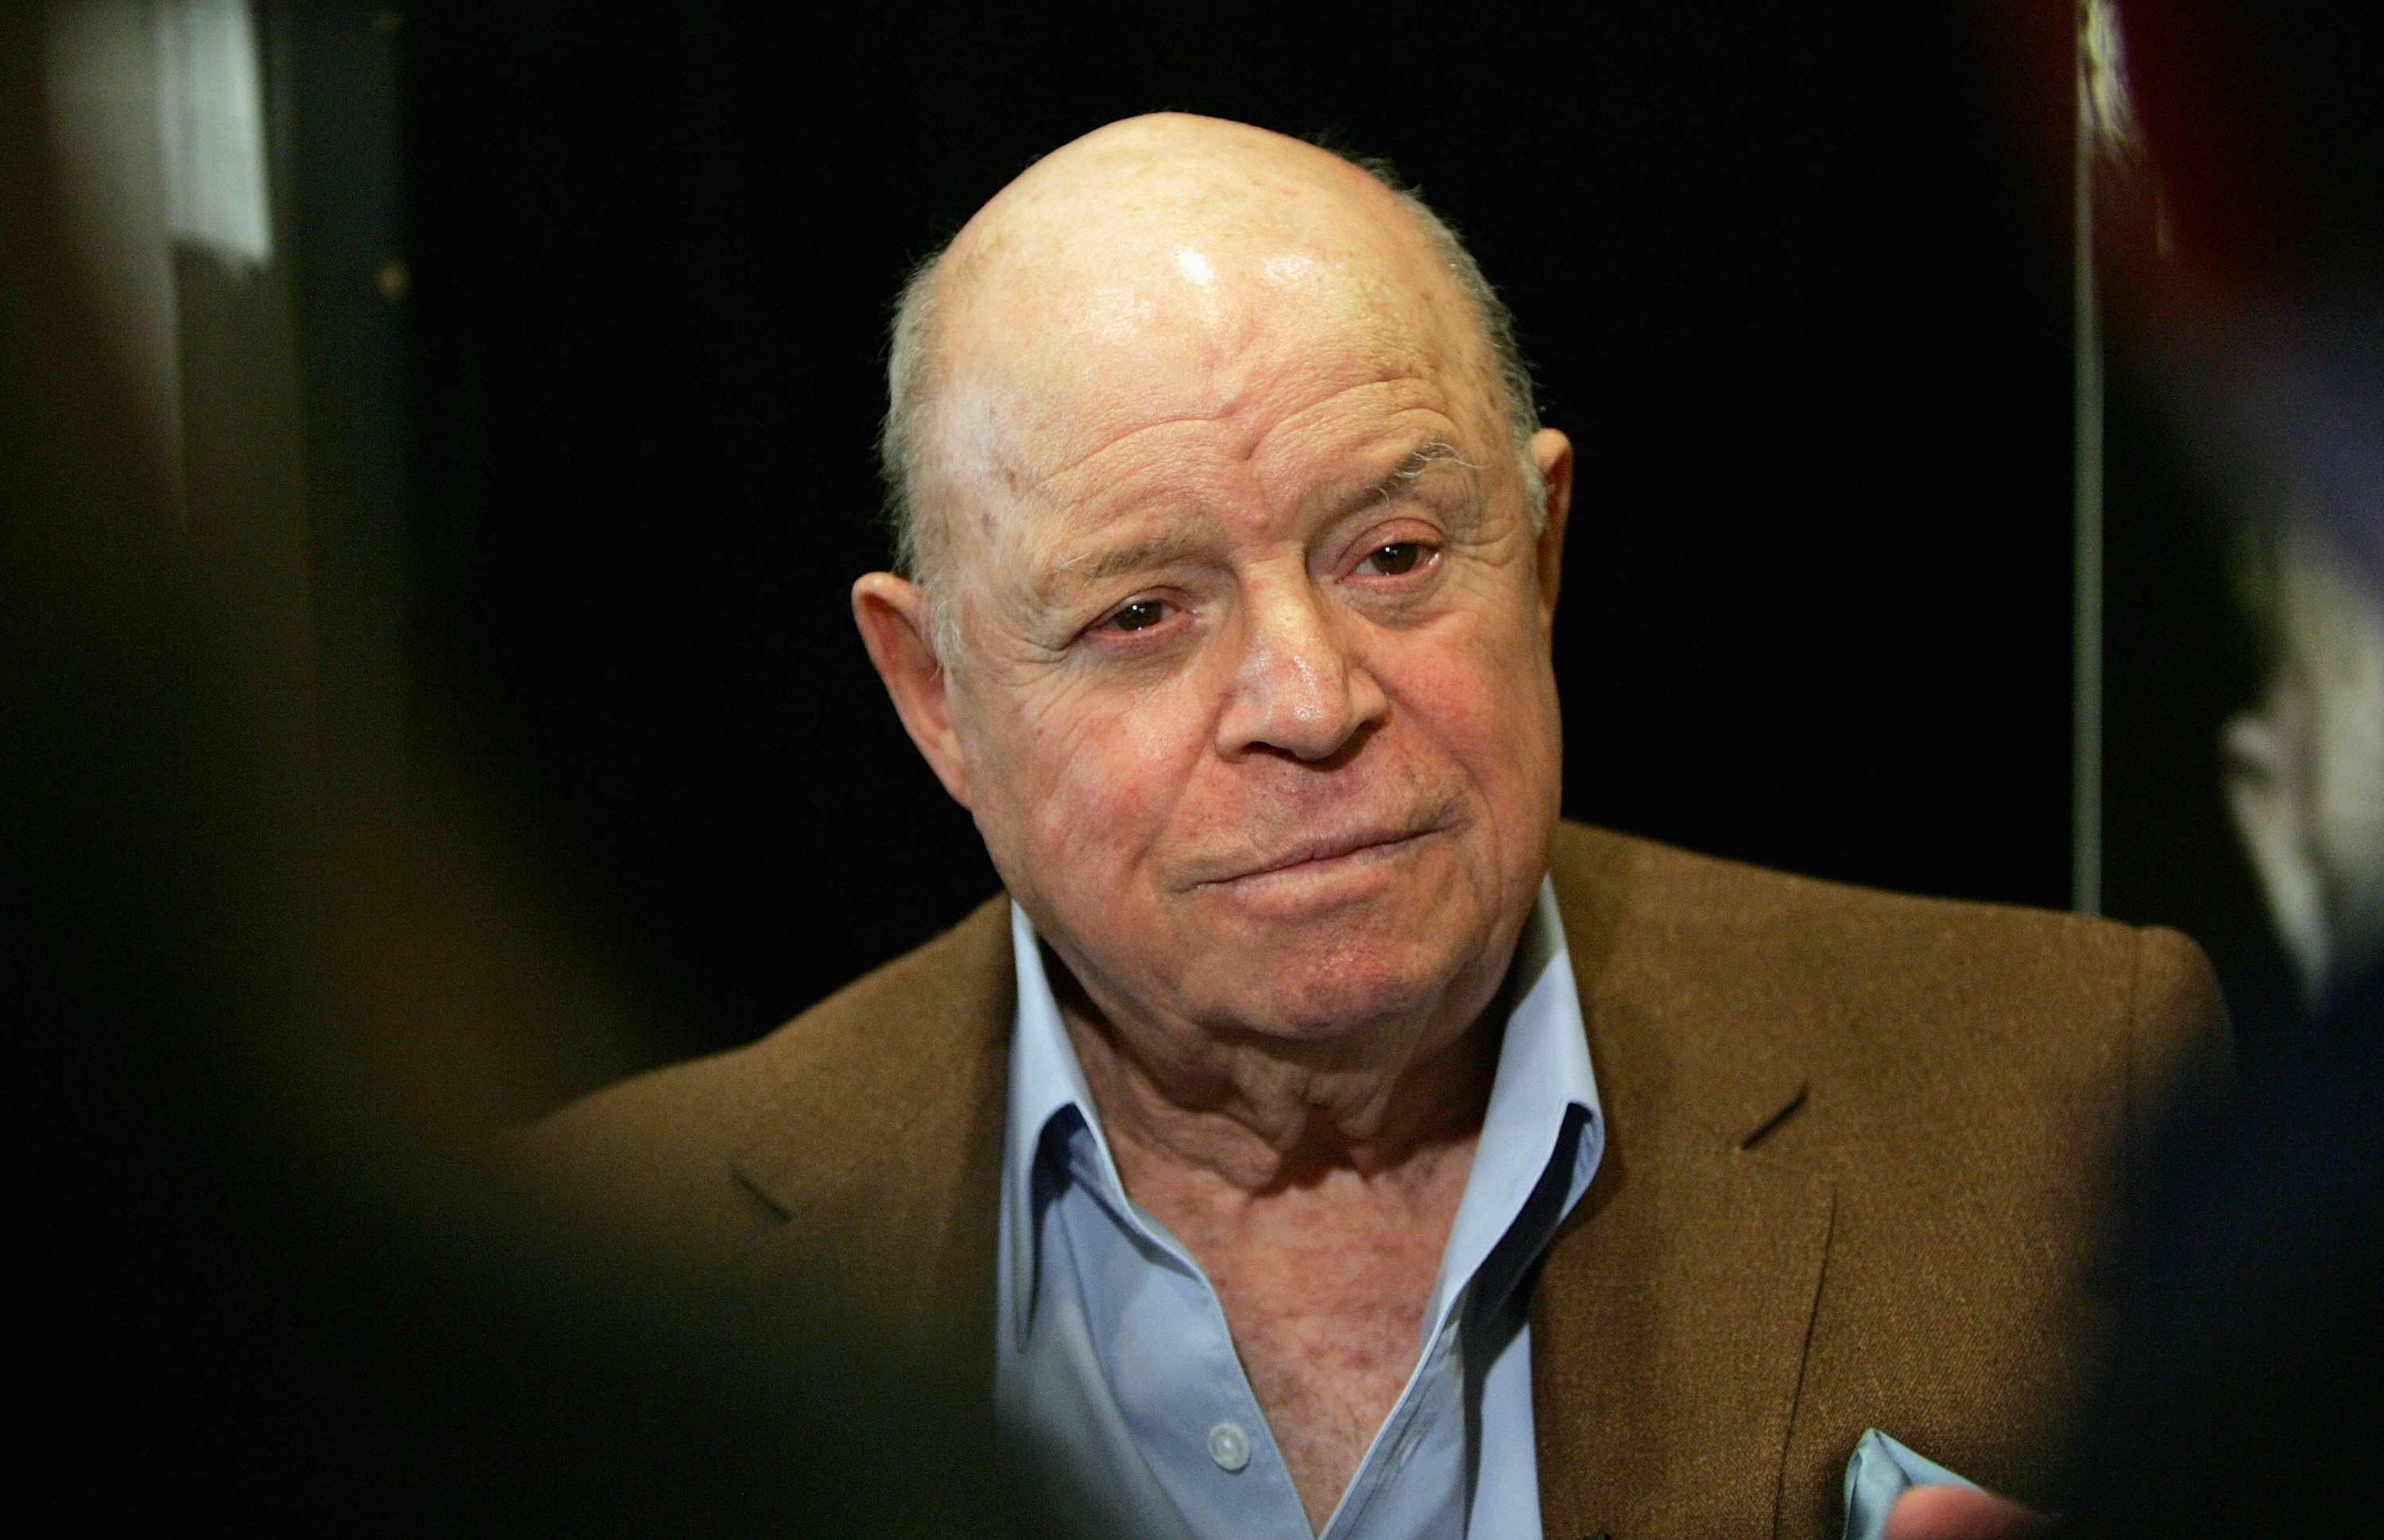 washington jewish week bringing you closer to your world don rickles insult comedian and actor is dead at 90